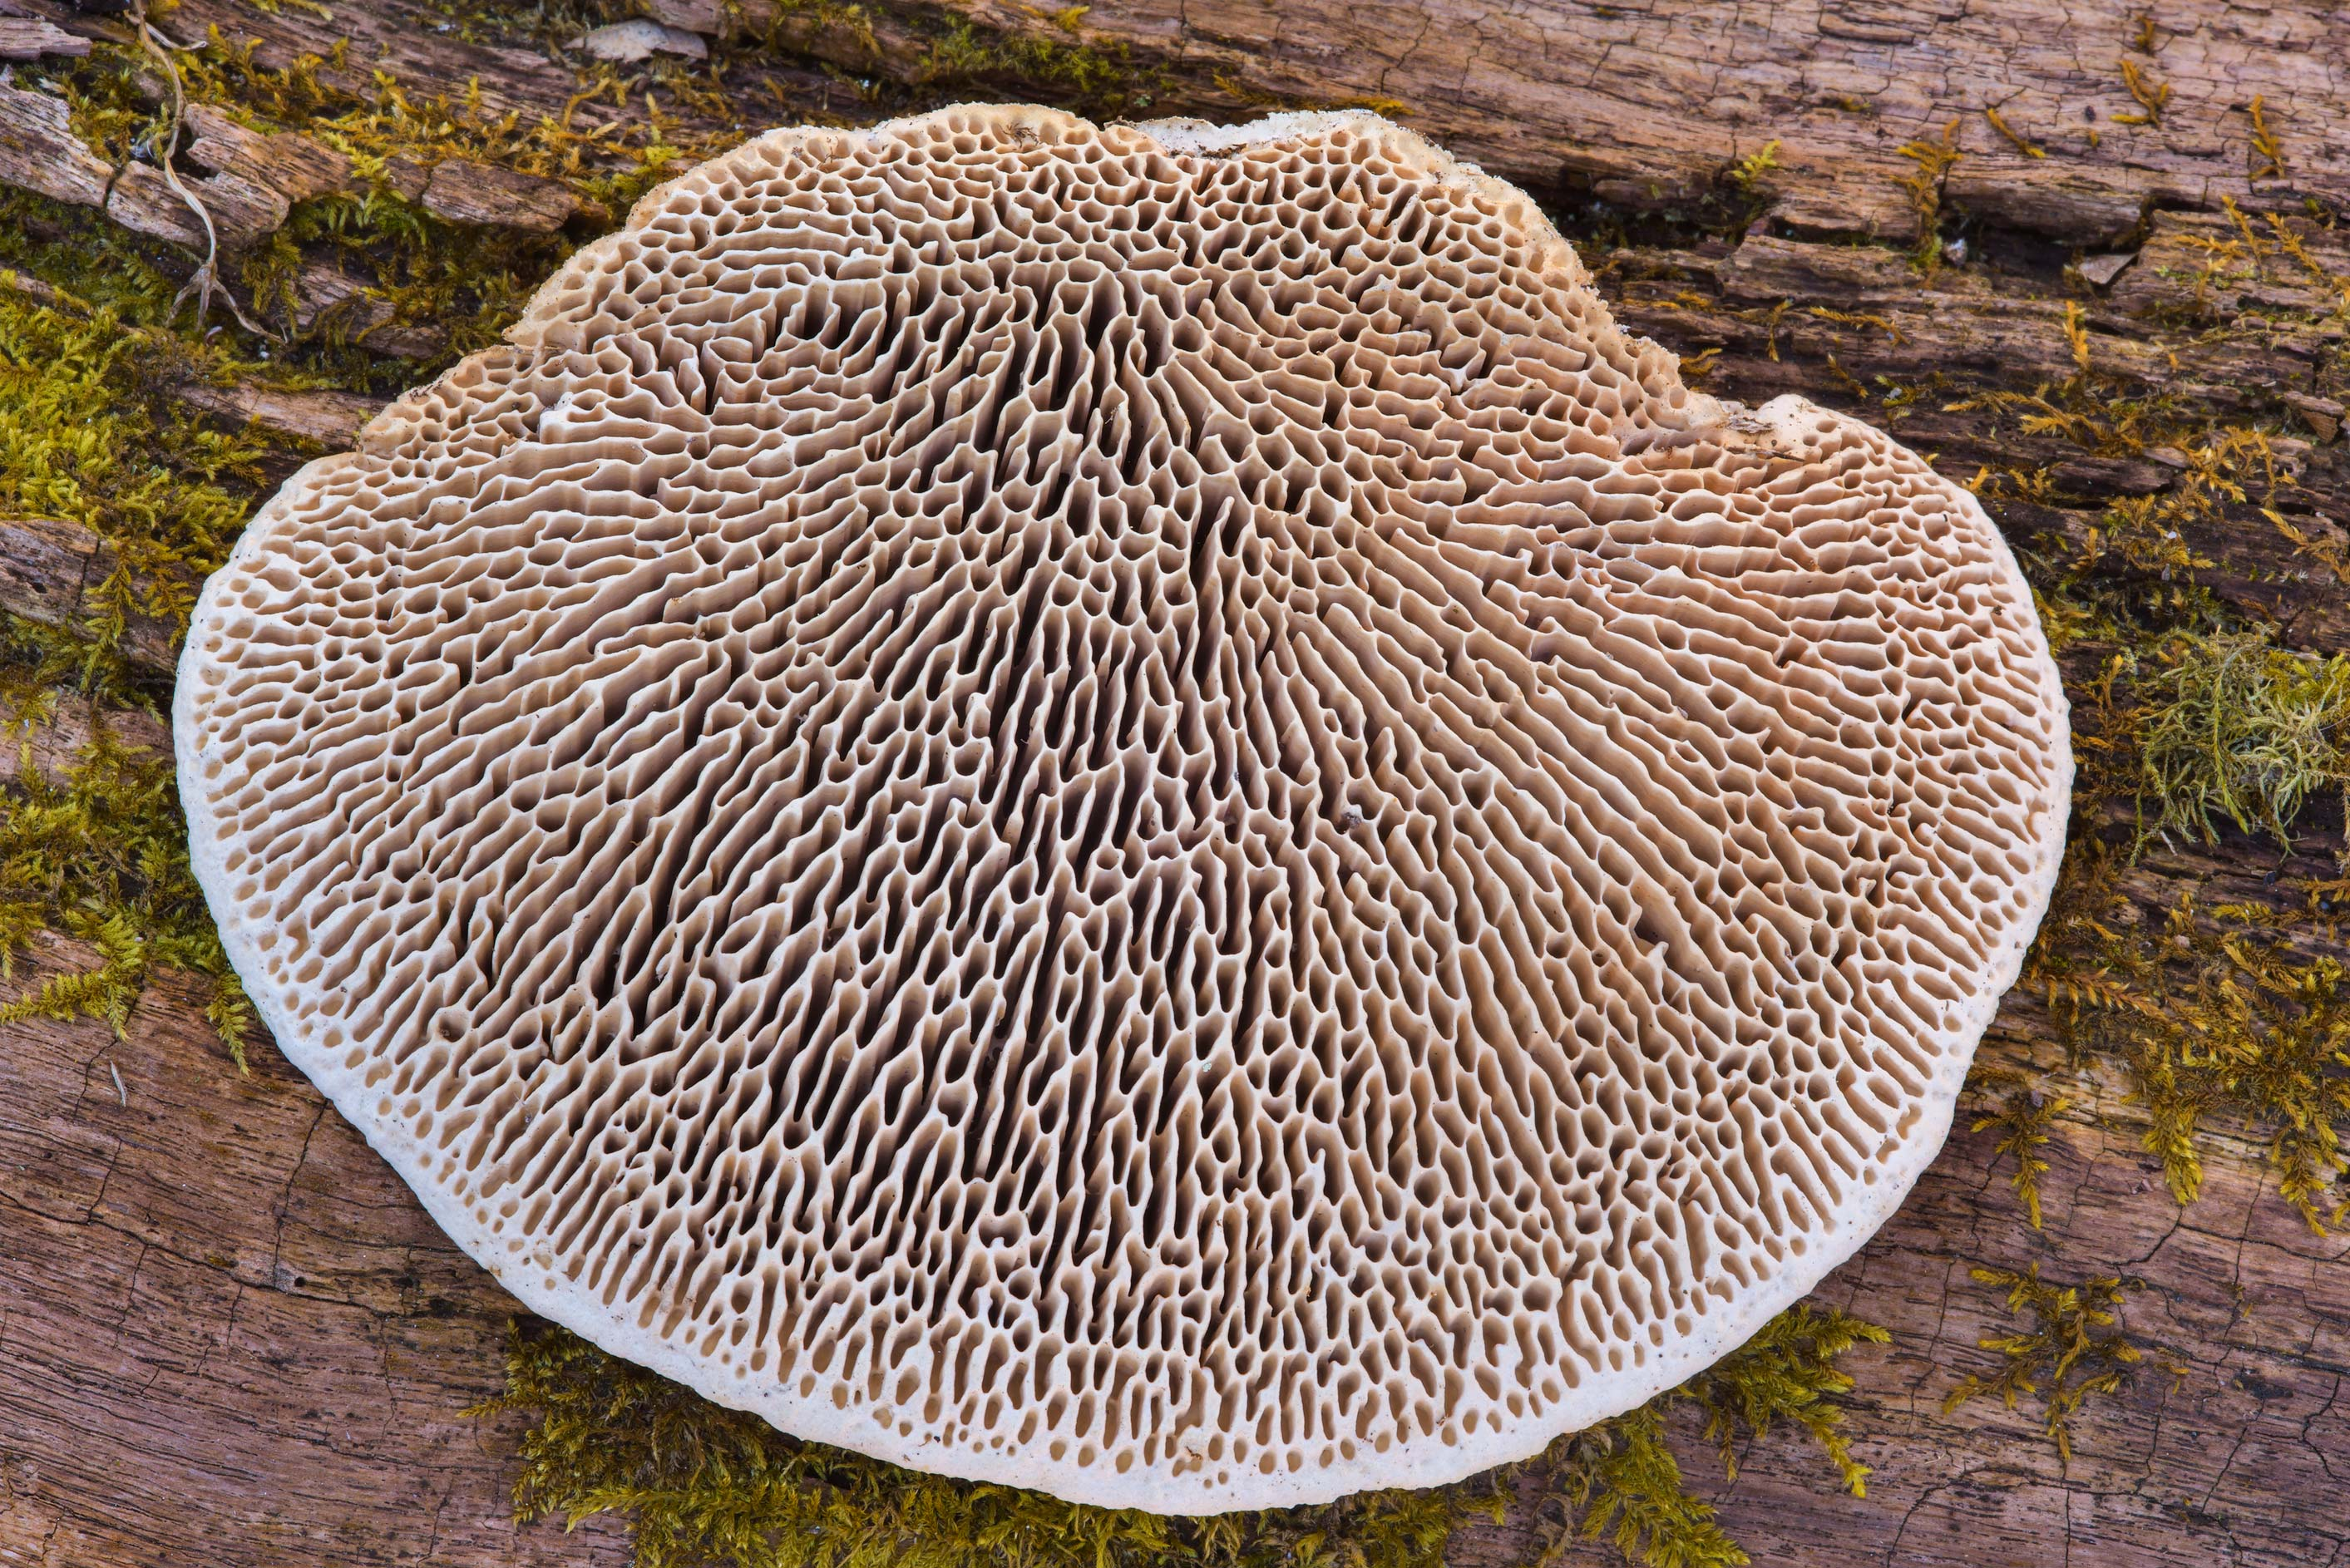 Hymenophore of maze-gill fungus (oak mazegill...Nos, west from St.Petersburg. Russia